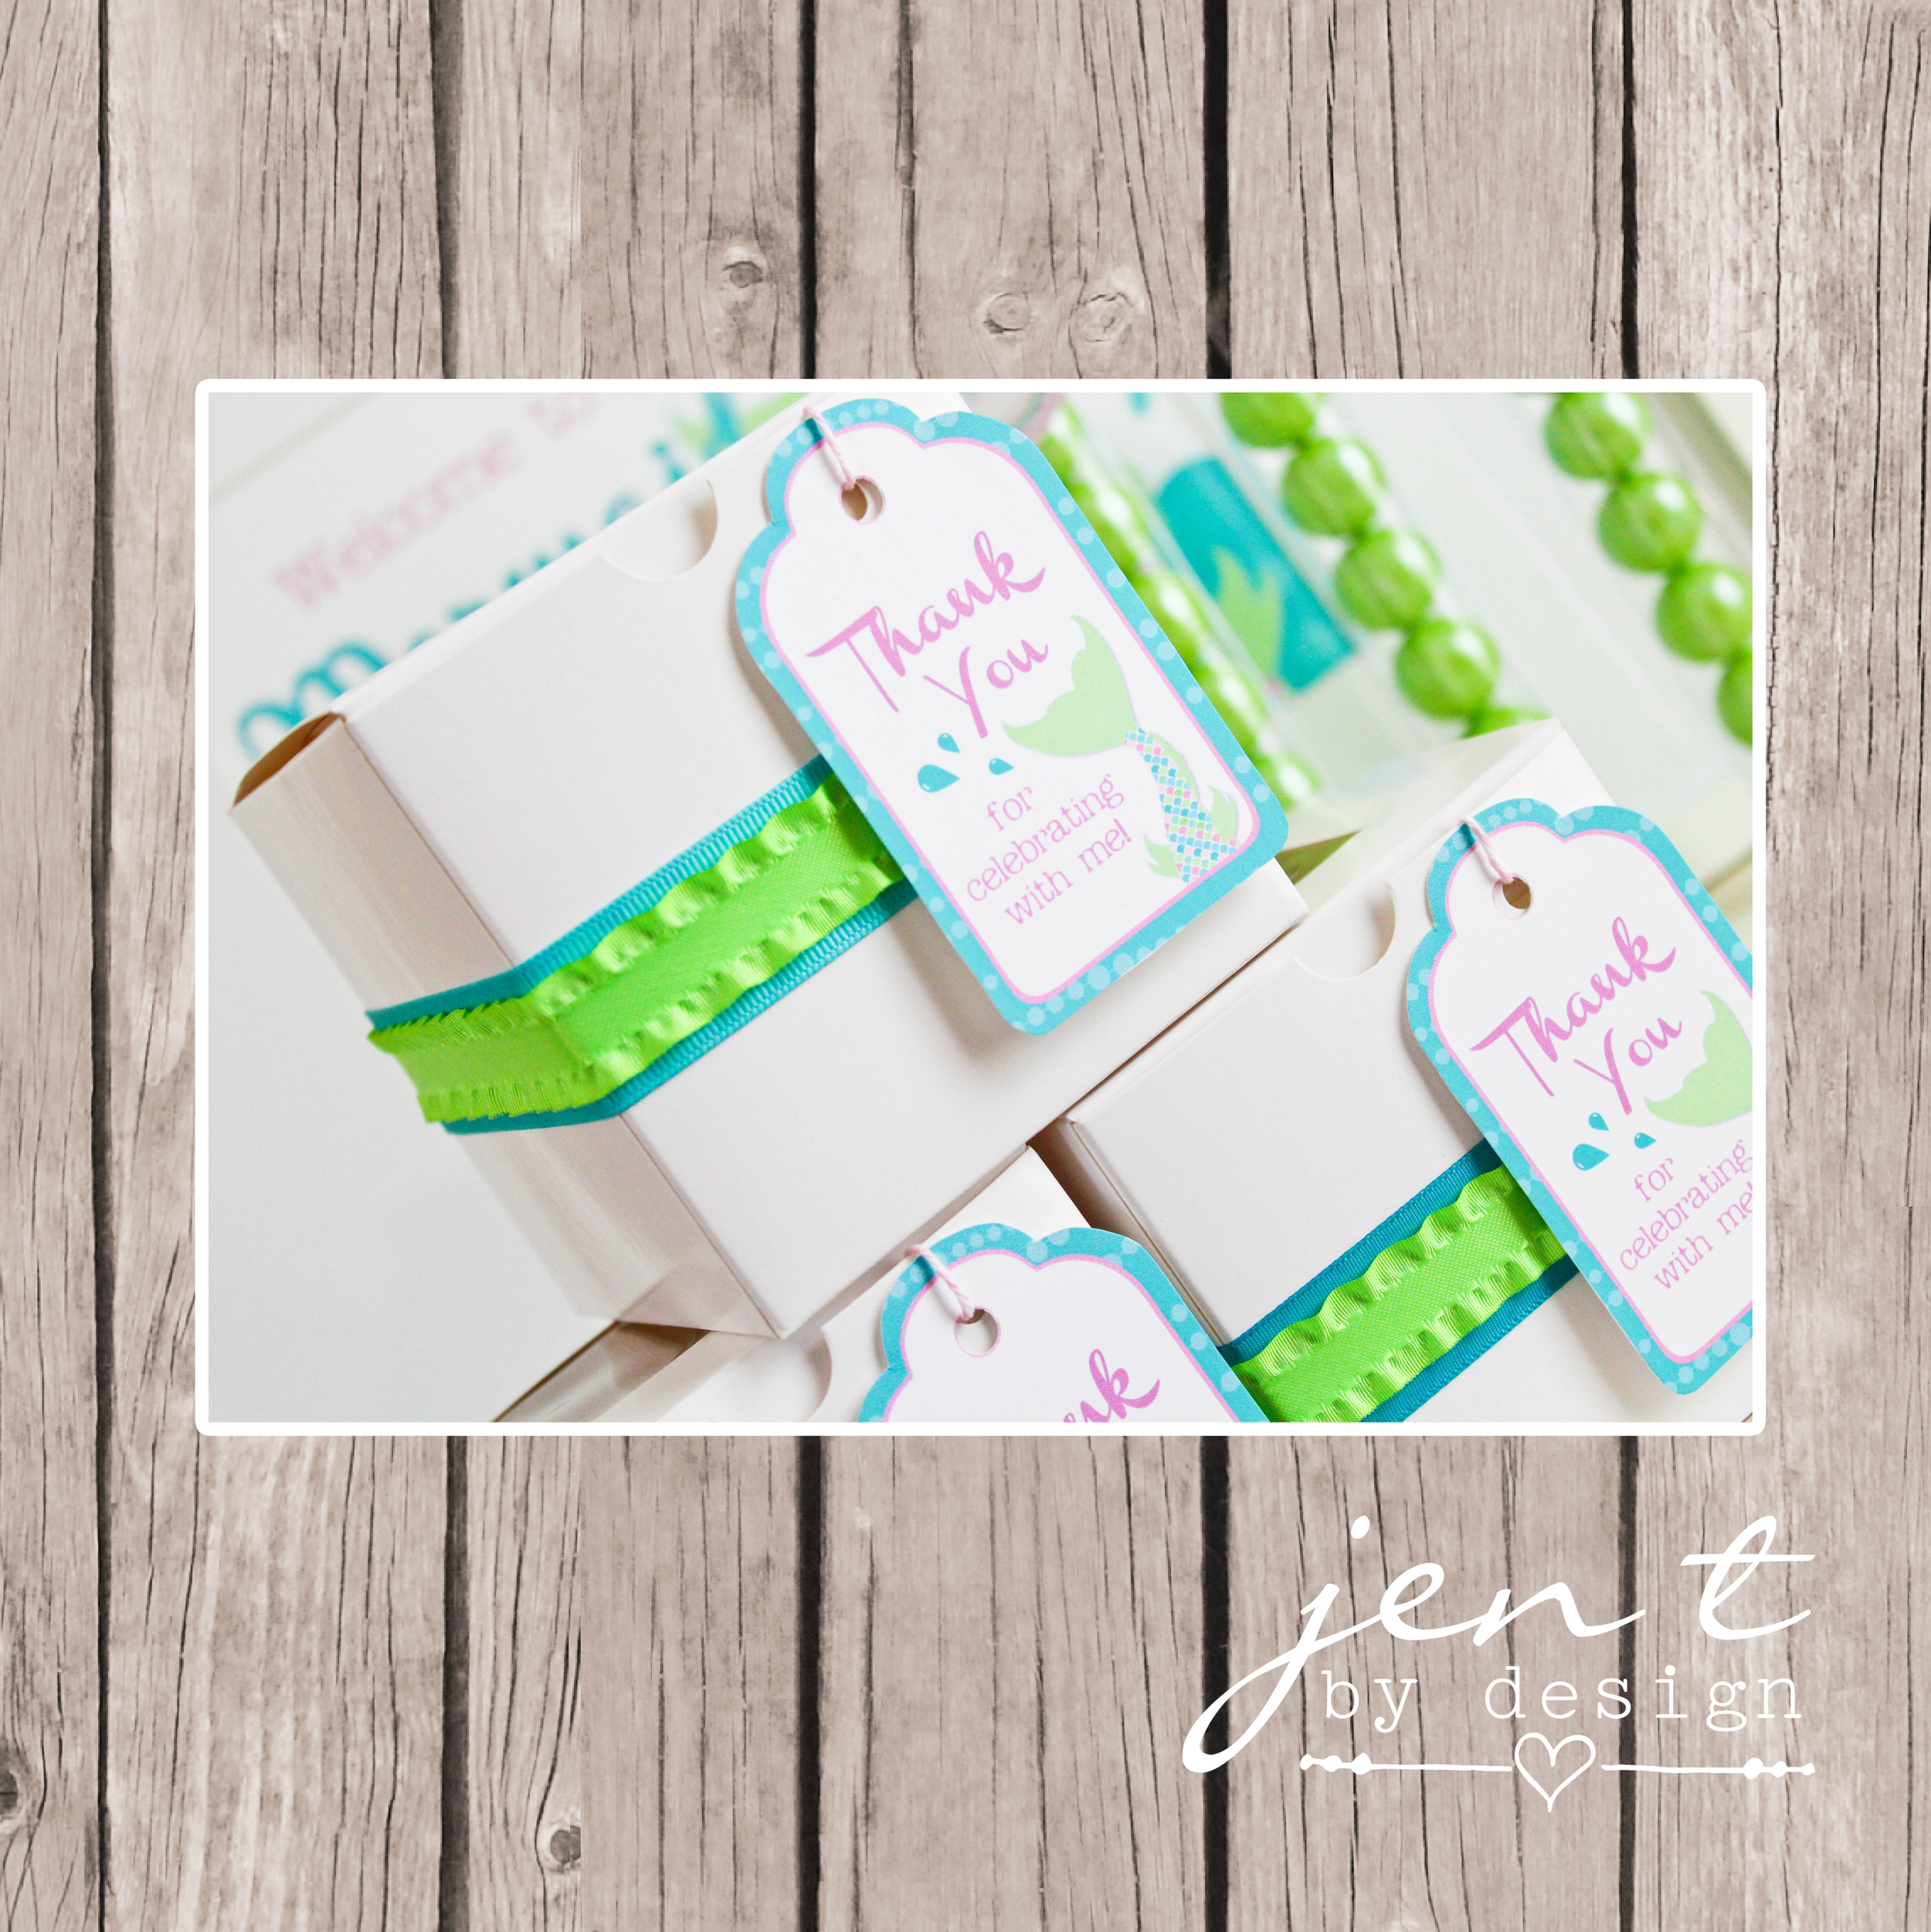 Mermaid Party Favors - mounted and watermarked copy.jpg